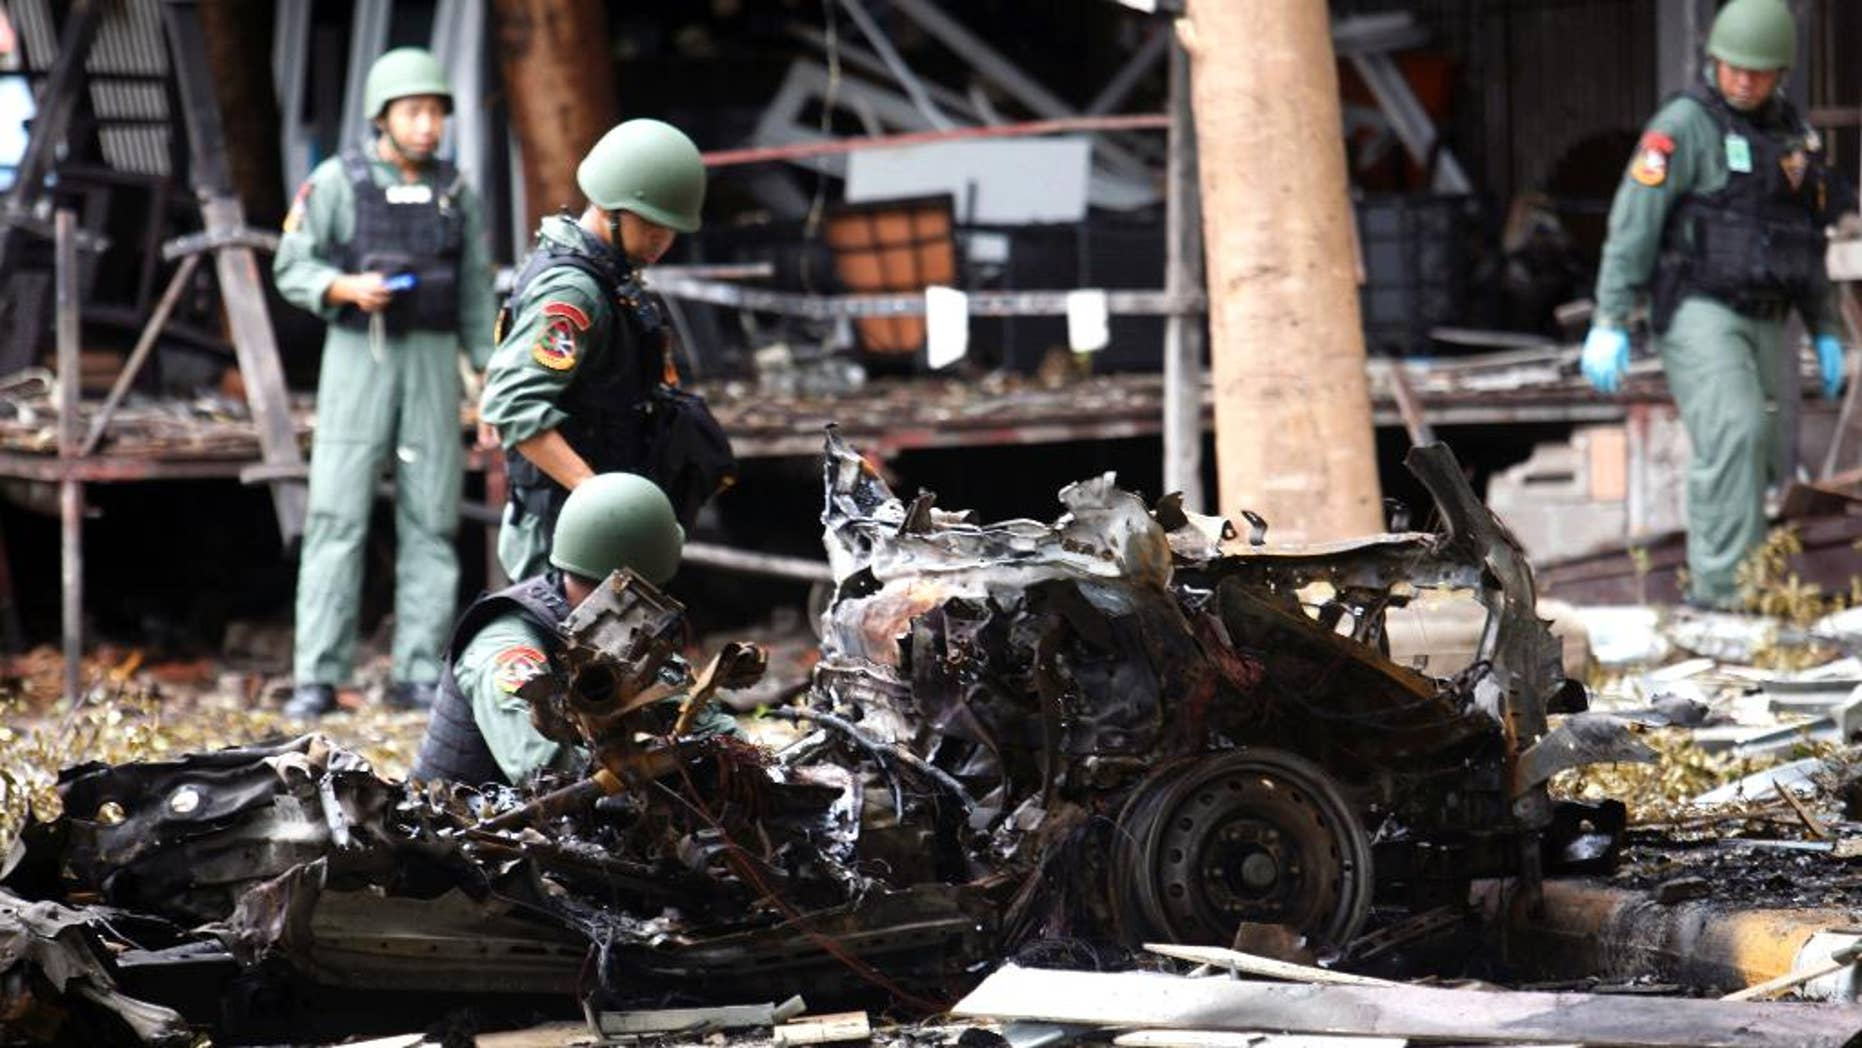 Thai bomb squad officers examine the wreckage of a car.